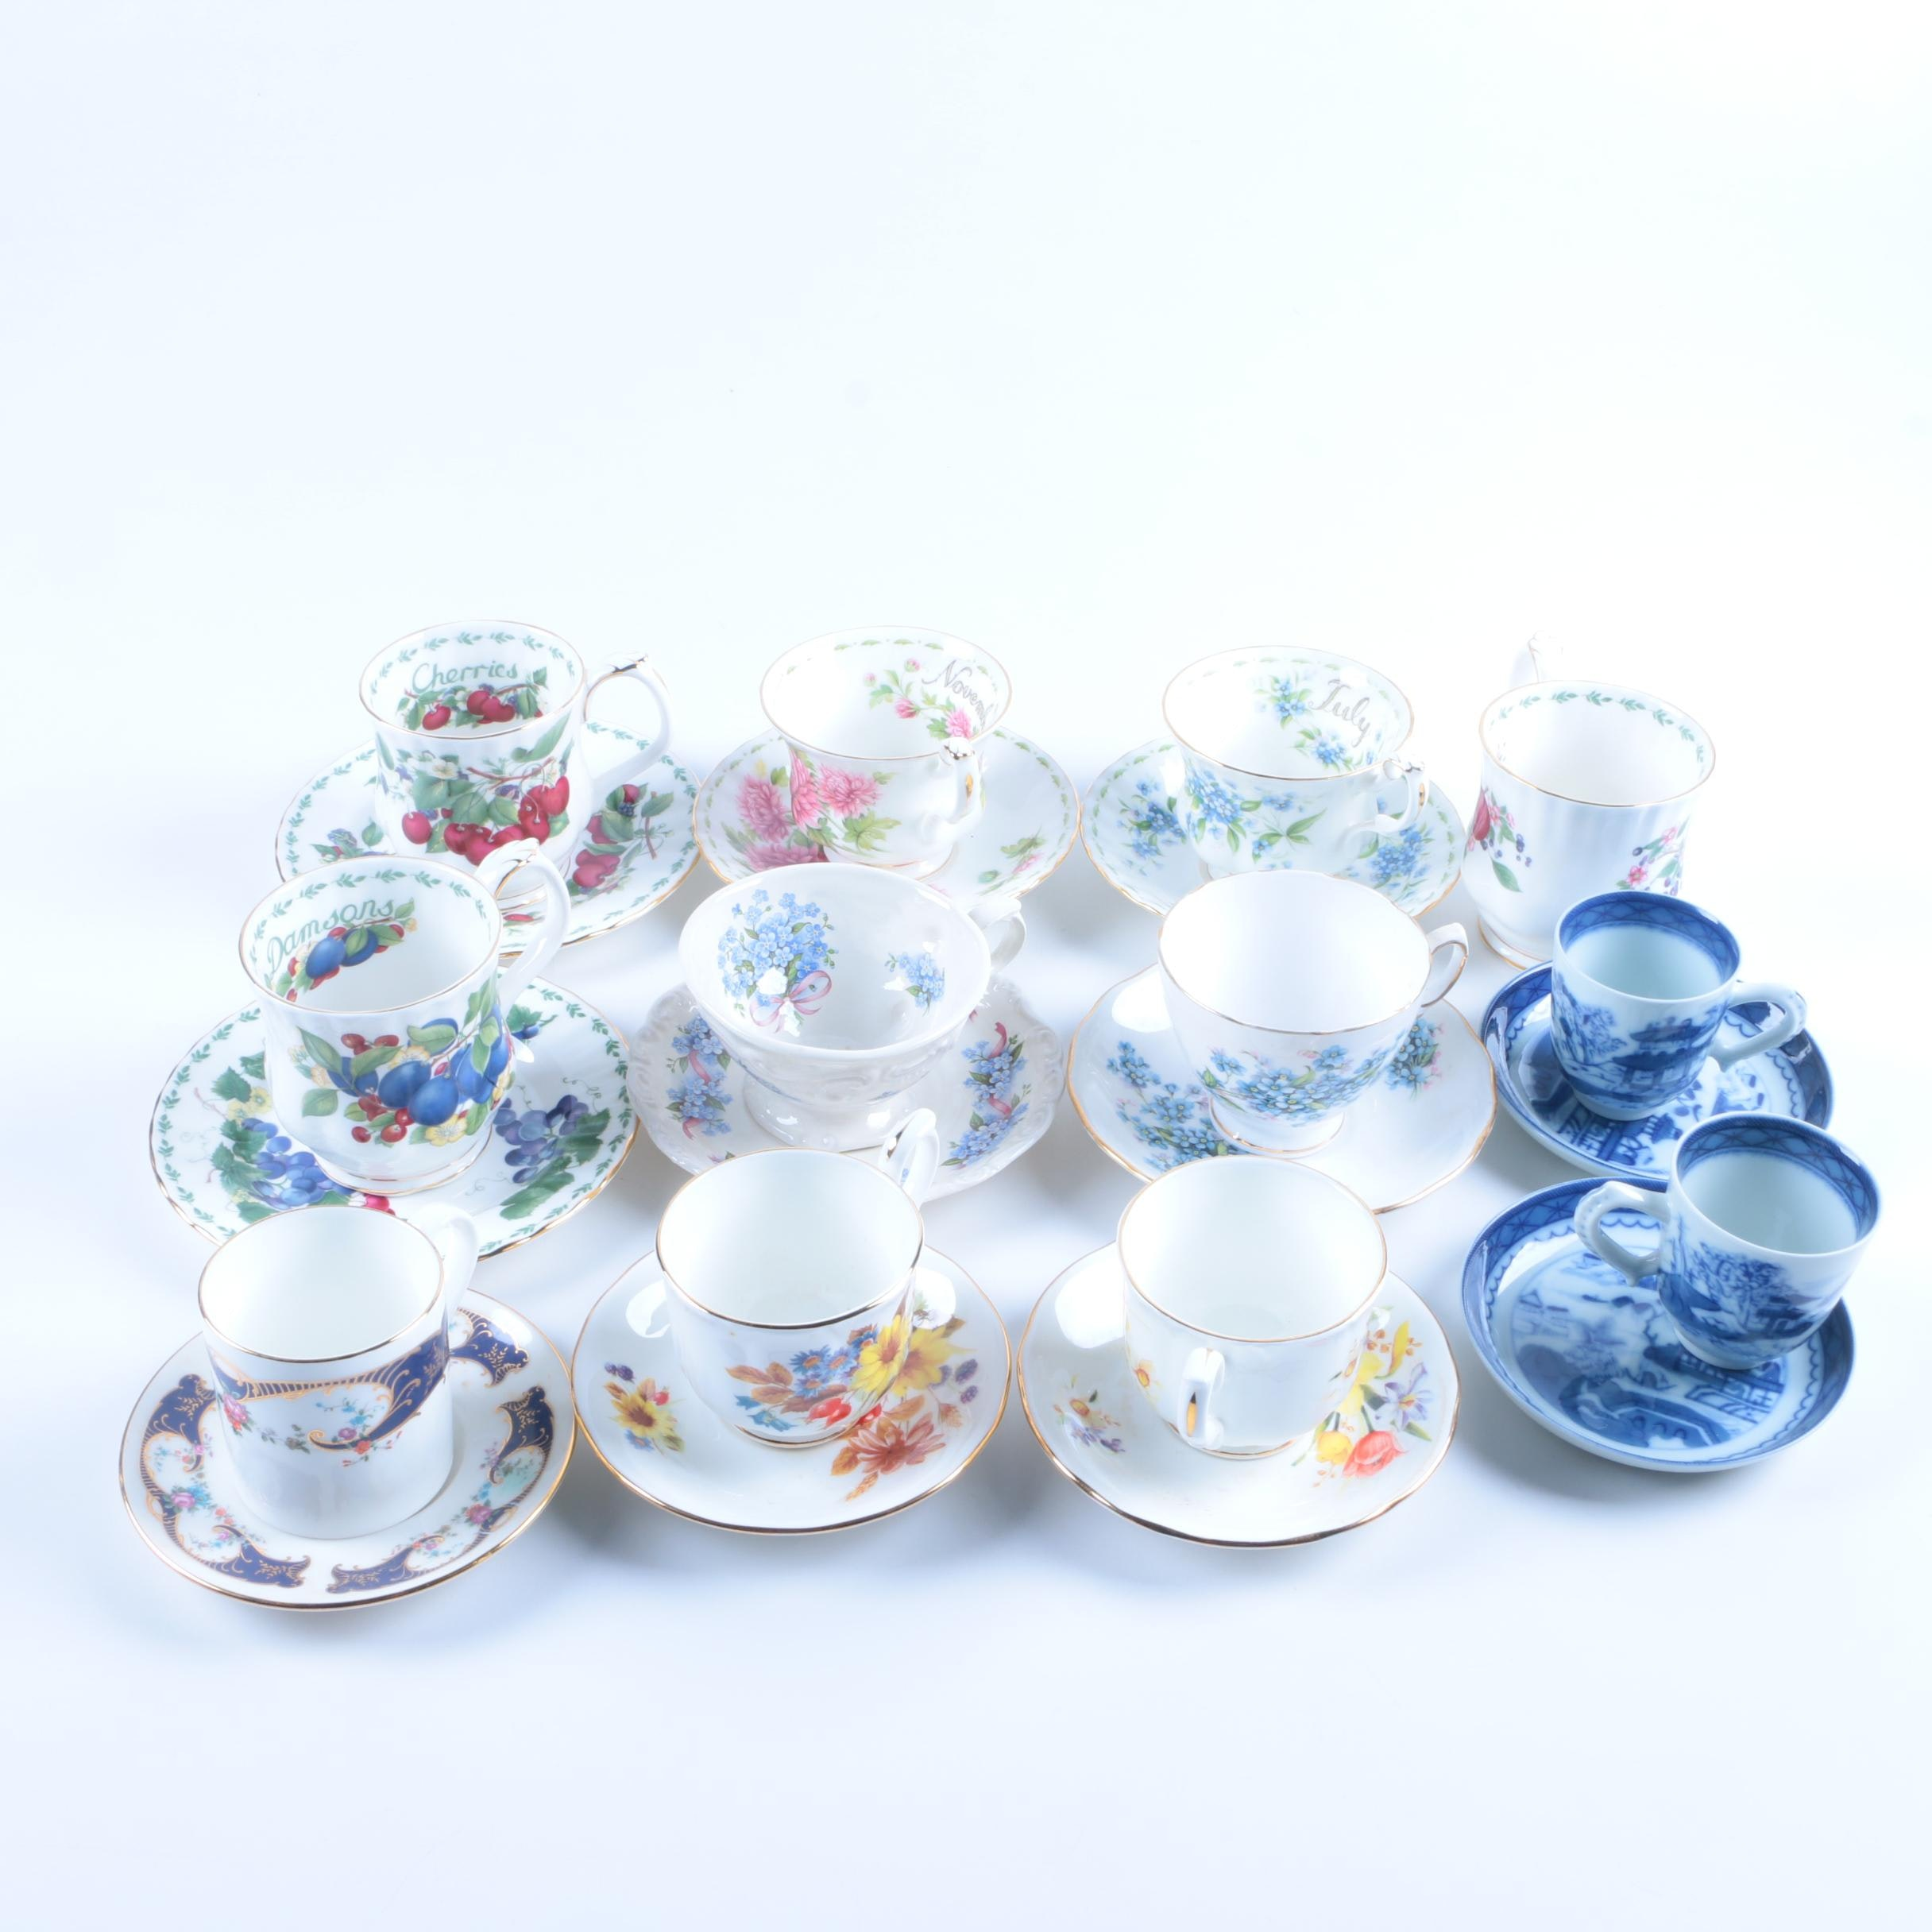 Bone China Teacup and Saucer Collection Including Royal Albert